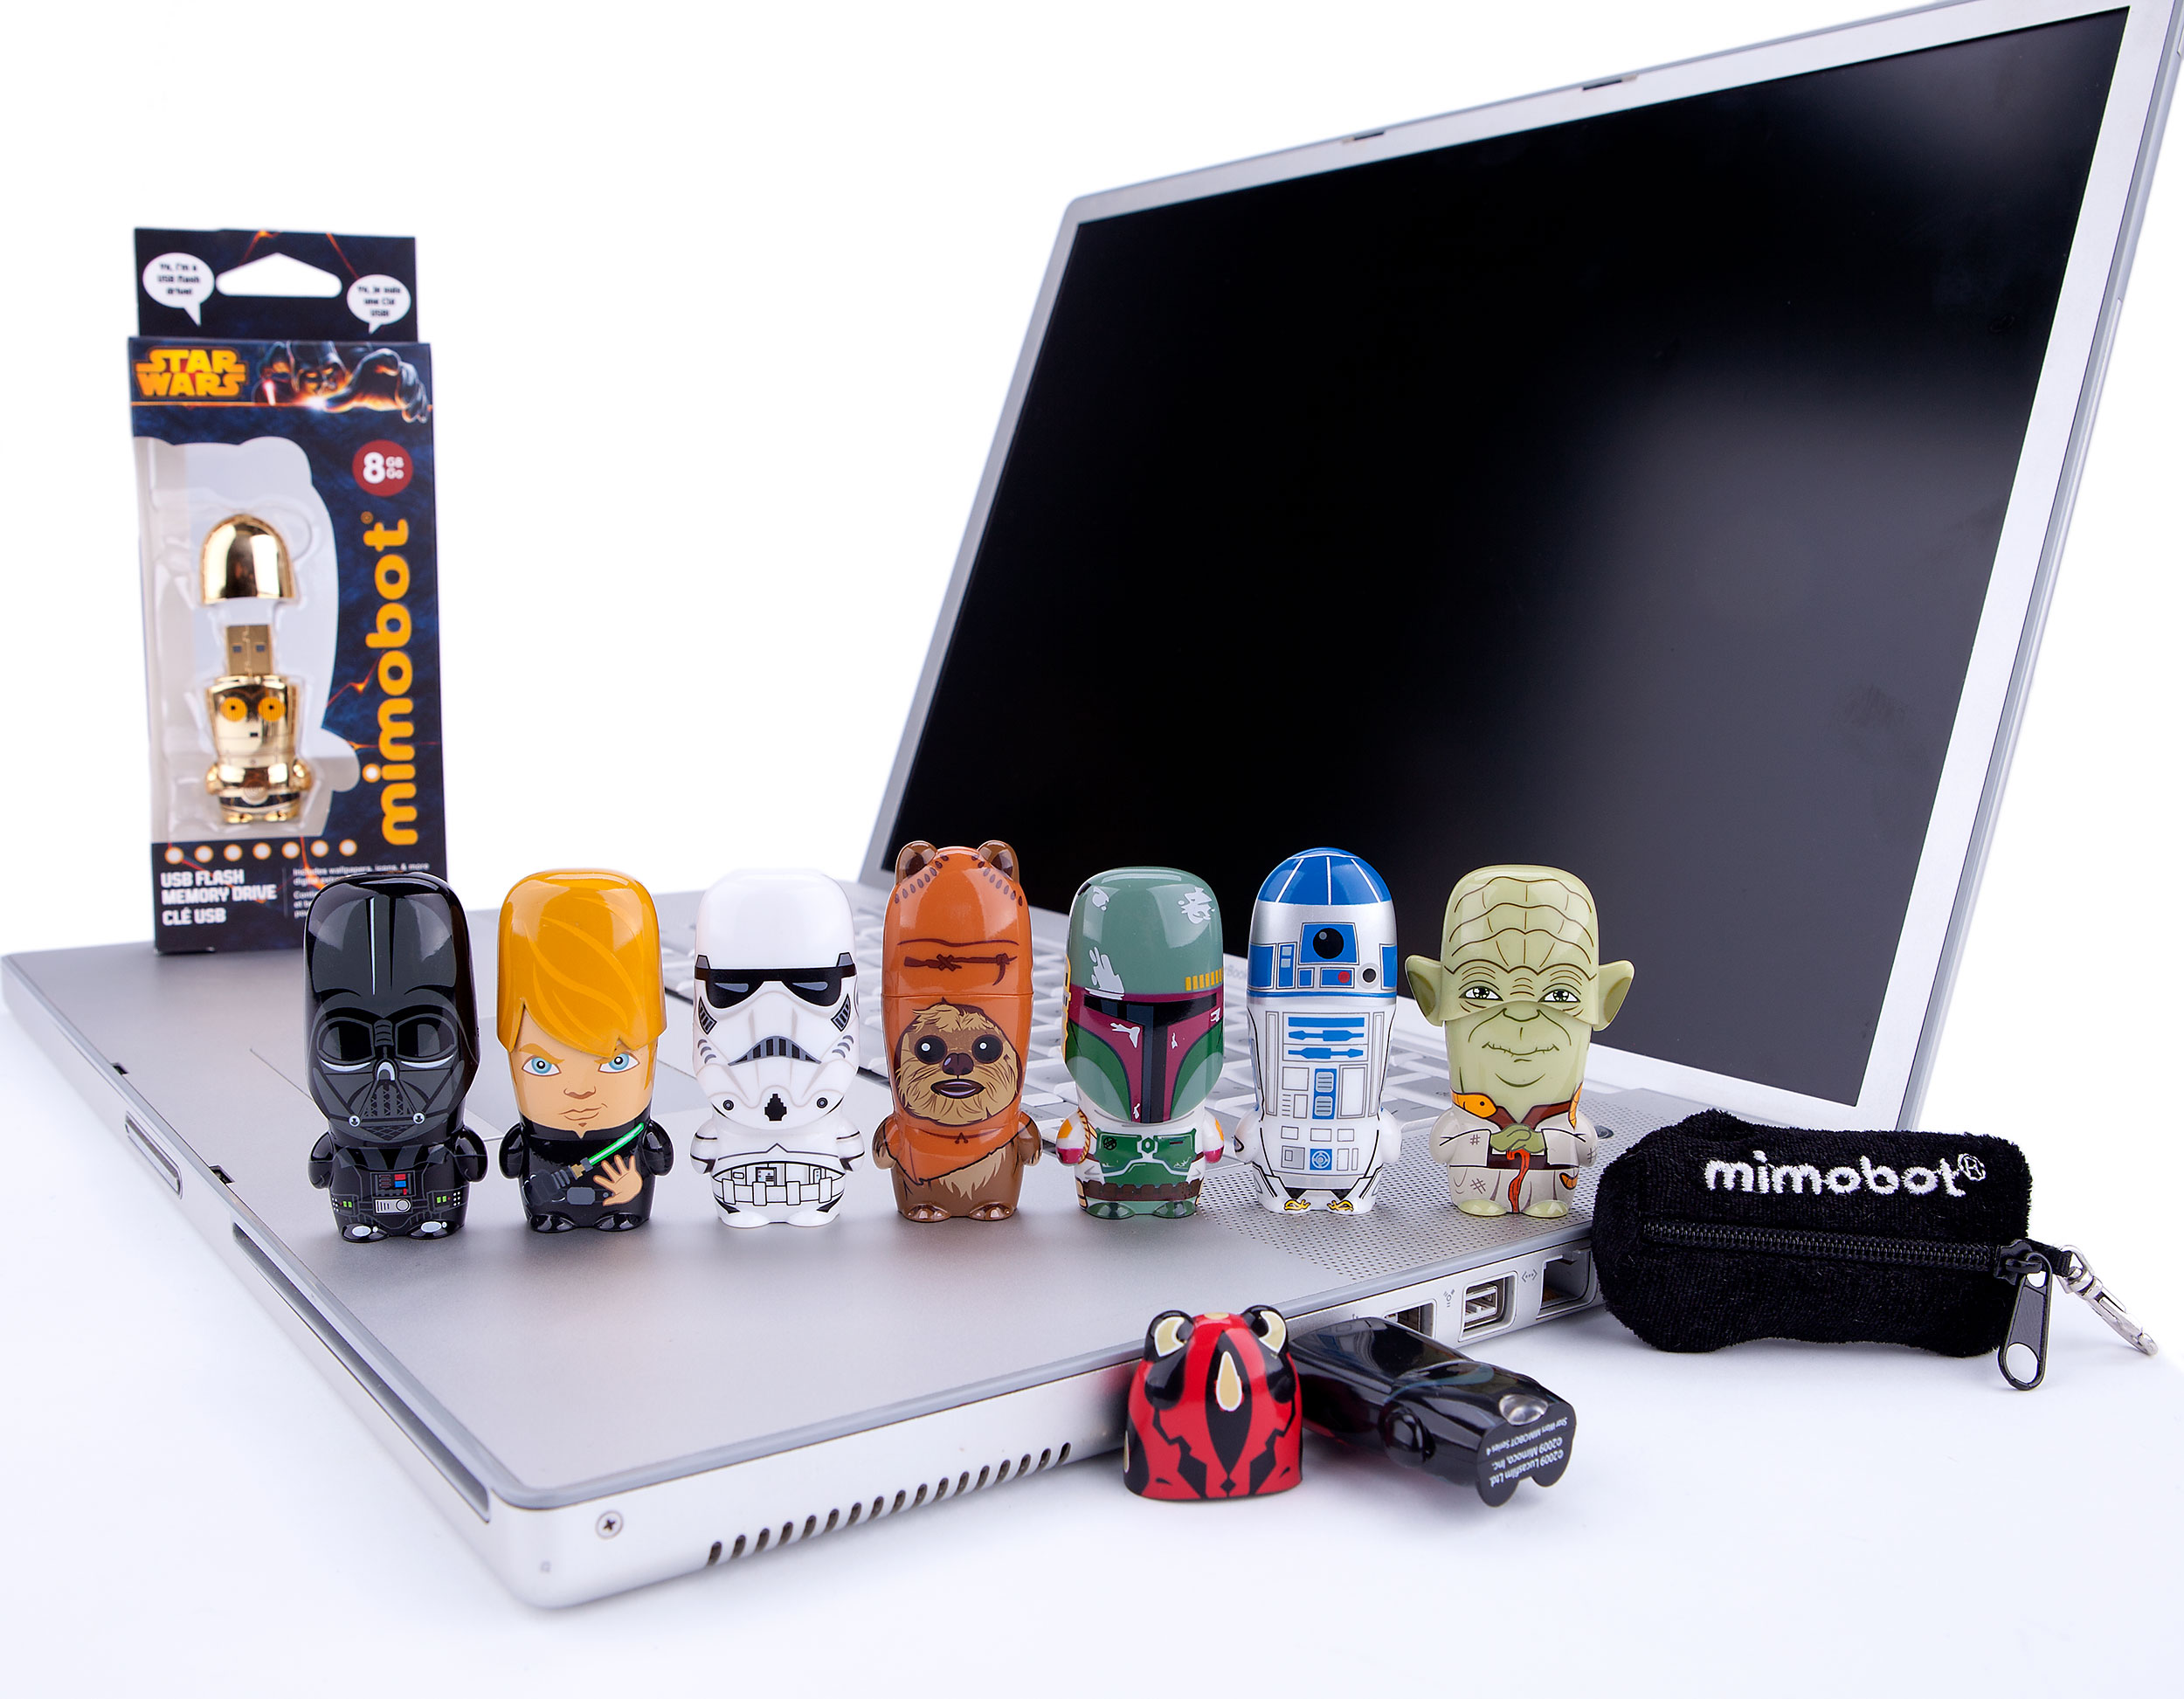 Star Wars MIMOBOT USB flash drives for Mimoco | LILLIAN LEE Art & Design